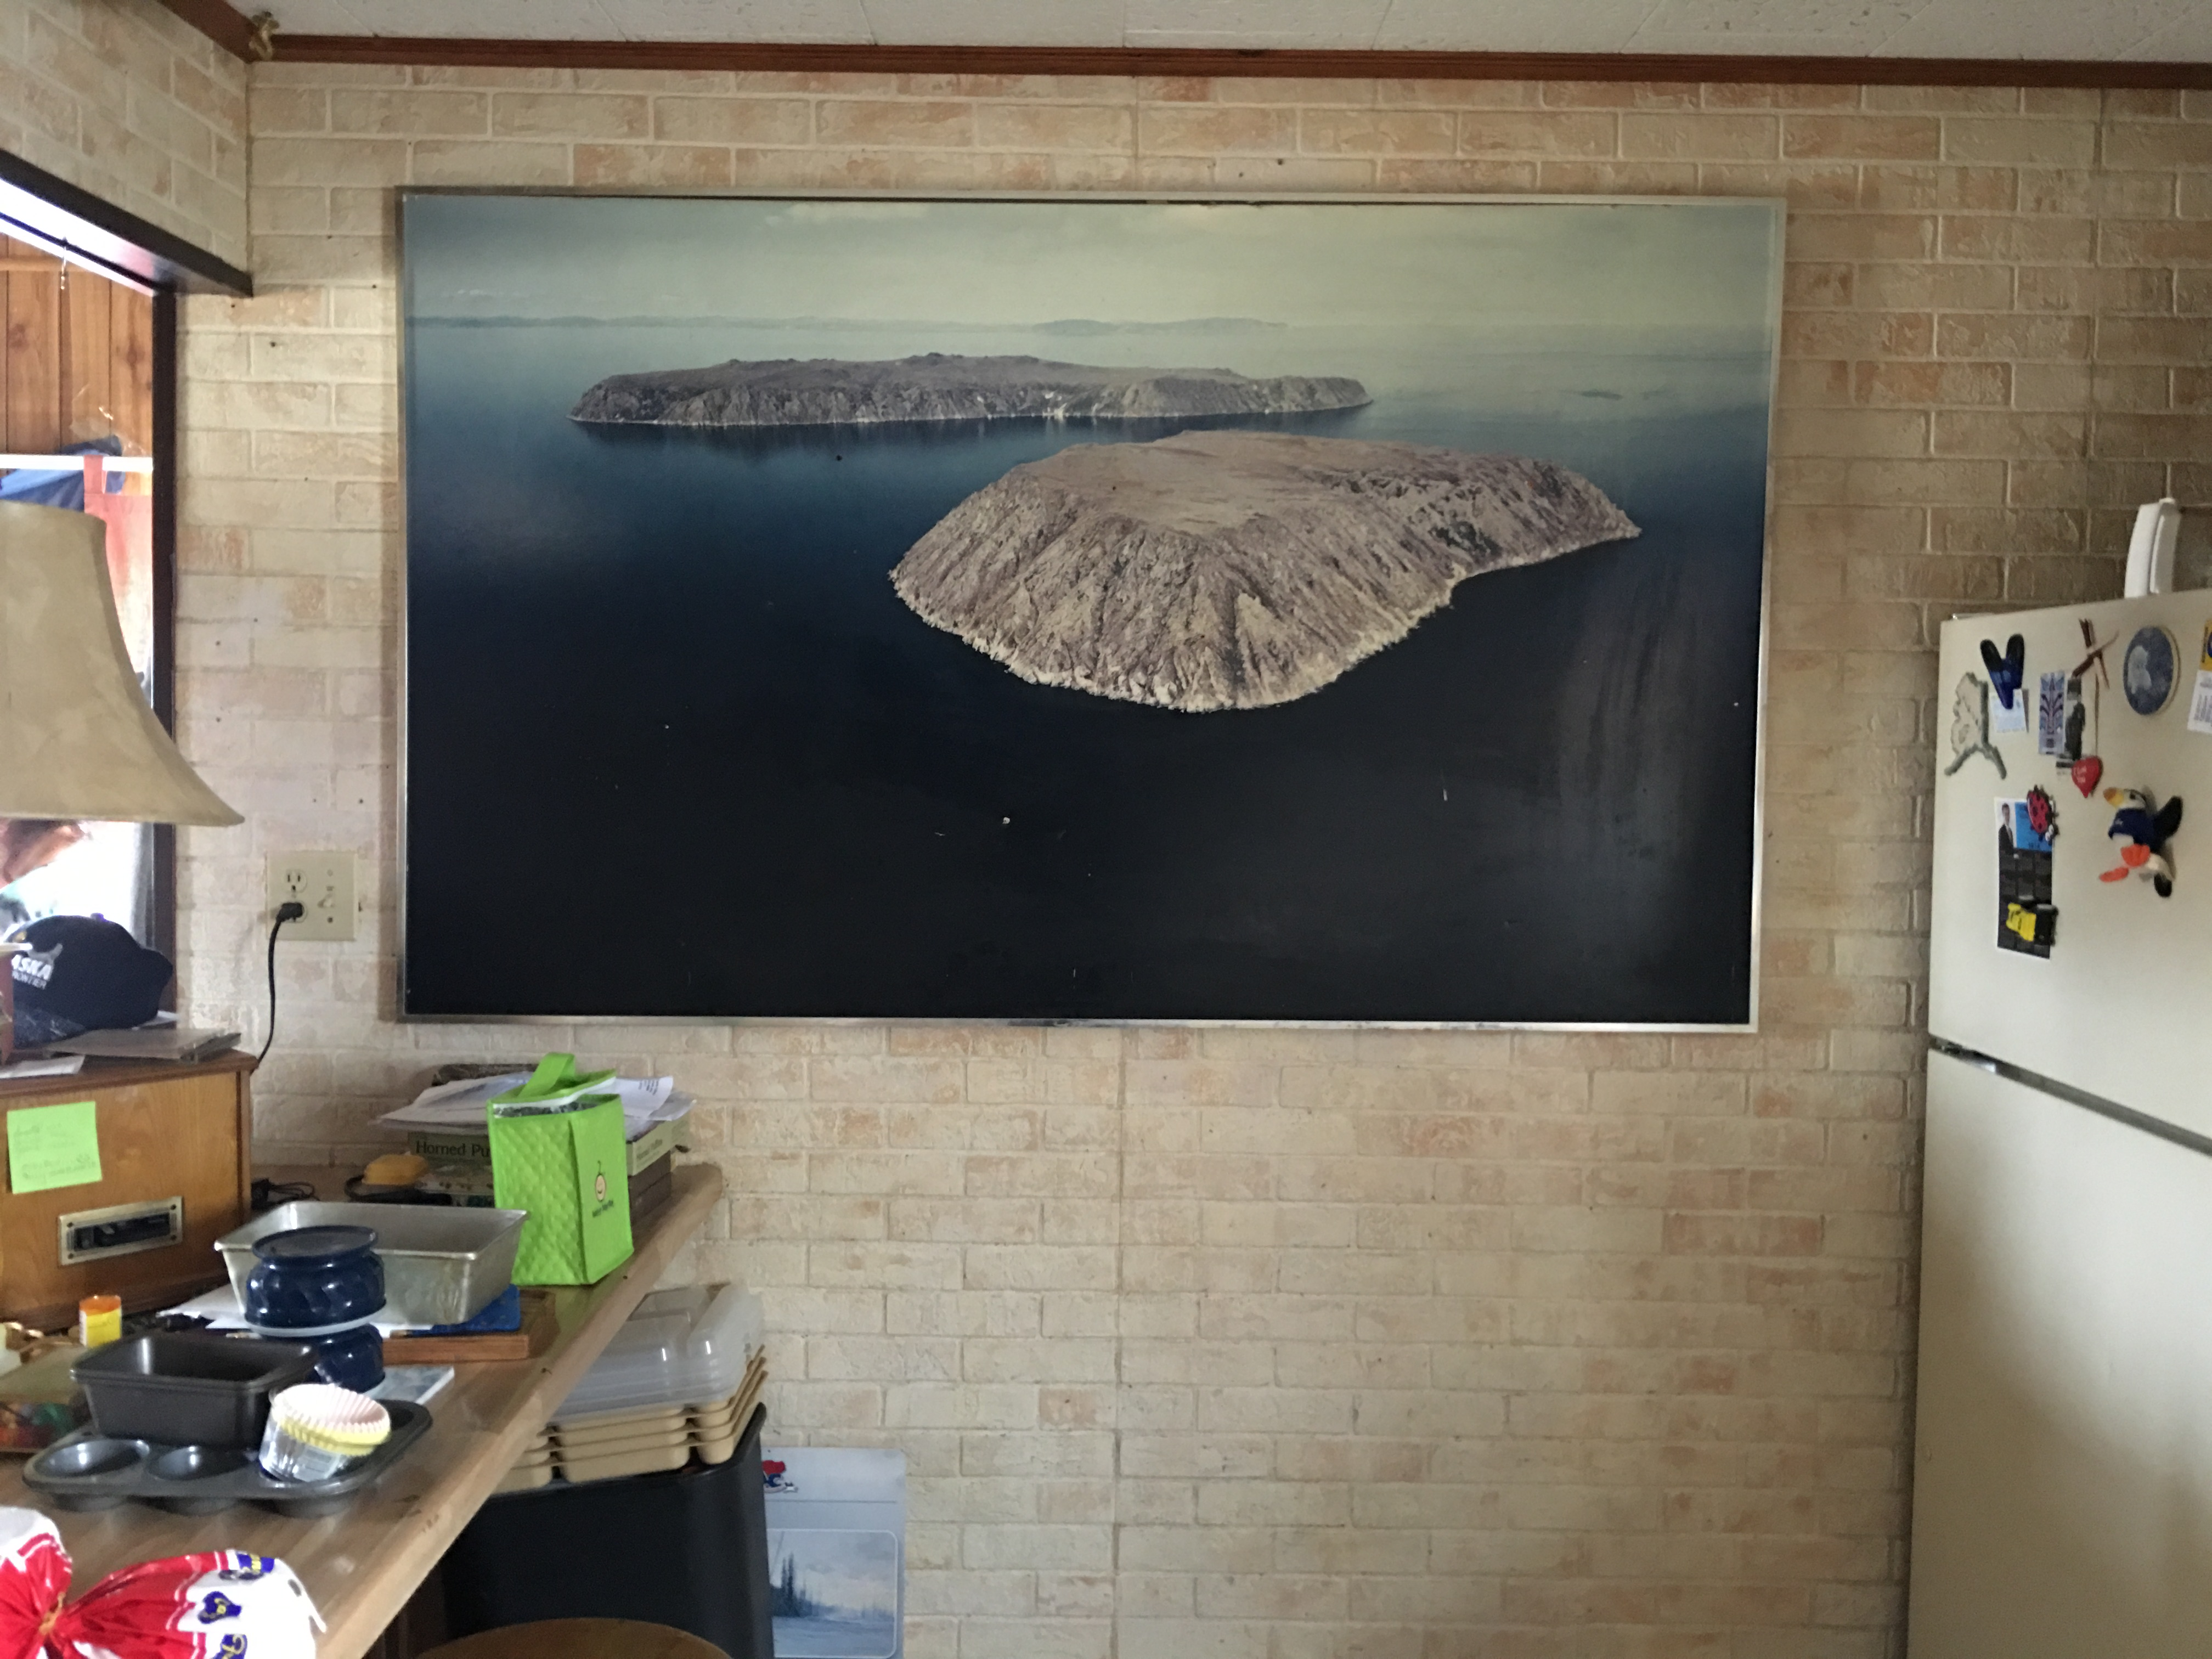 A photo of the Diomede Islands hangs over the kitchen of Etta Tall's home in Nome. Tall, born on Little Diomede, hoped to find relatives from Big Diomede during a two-week voyage through Chukotka in June and July of 2016. (Kirsten Swann / Alaska Dispatch News)